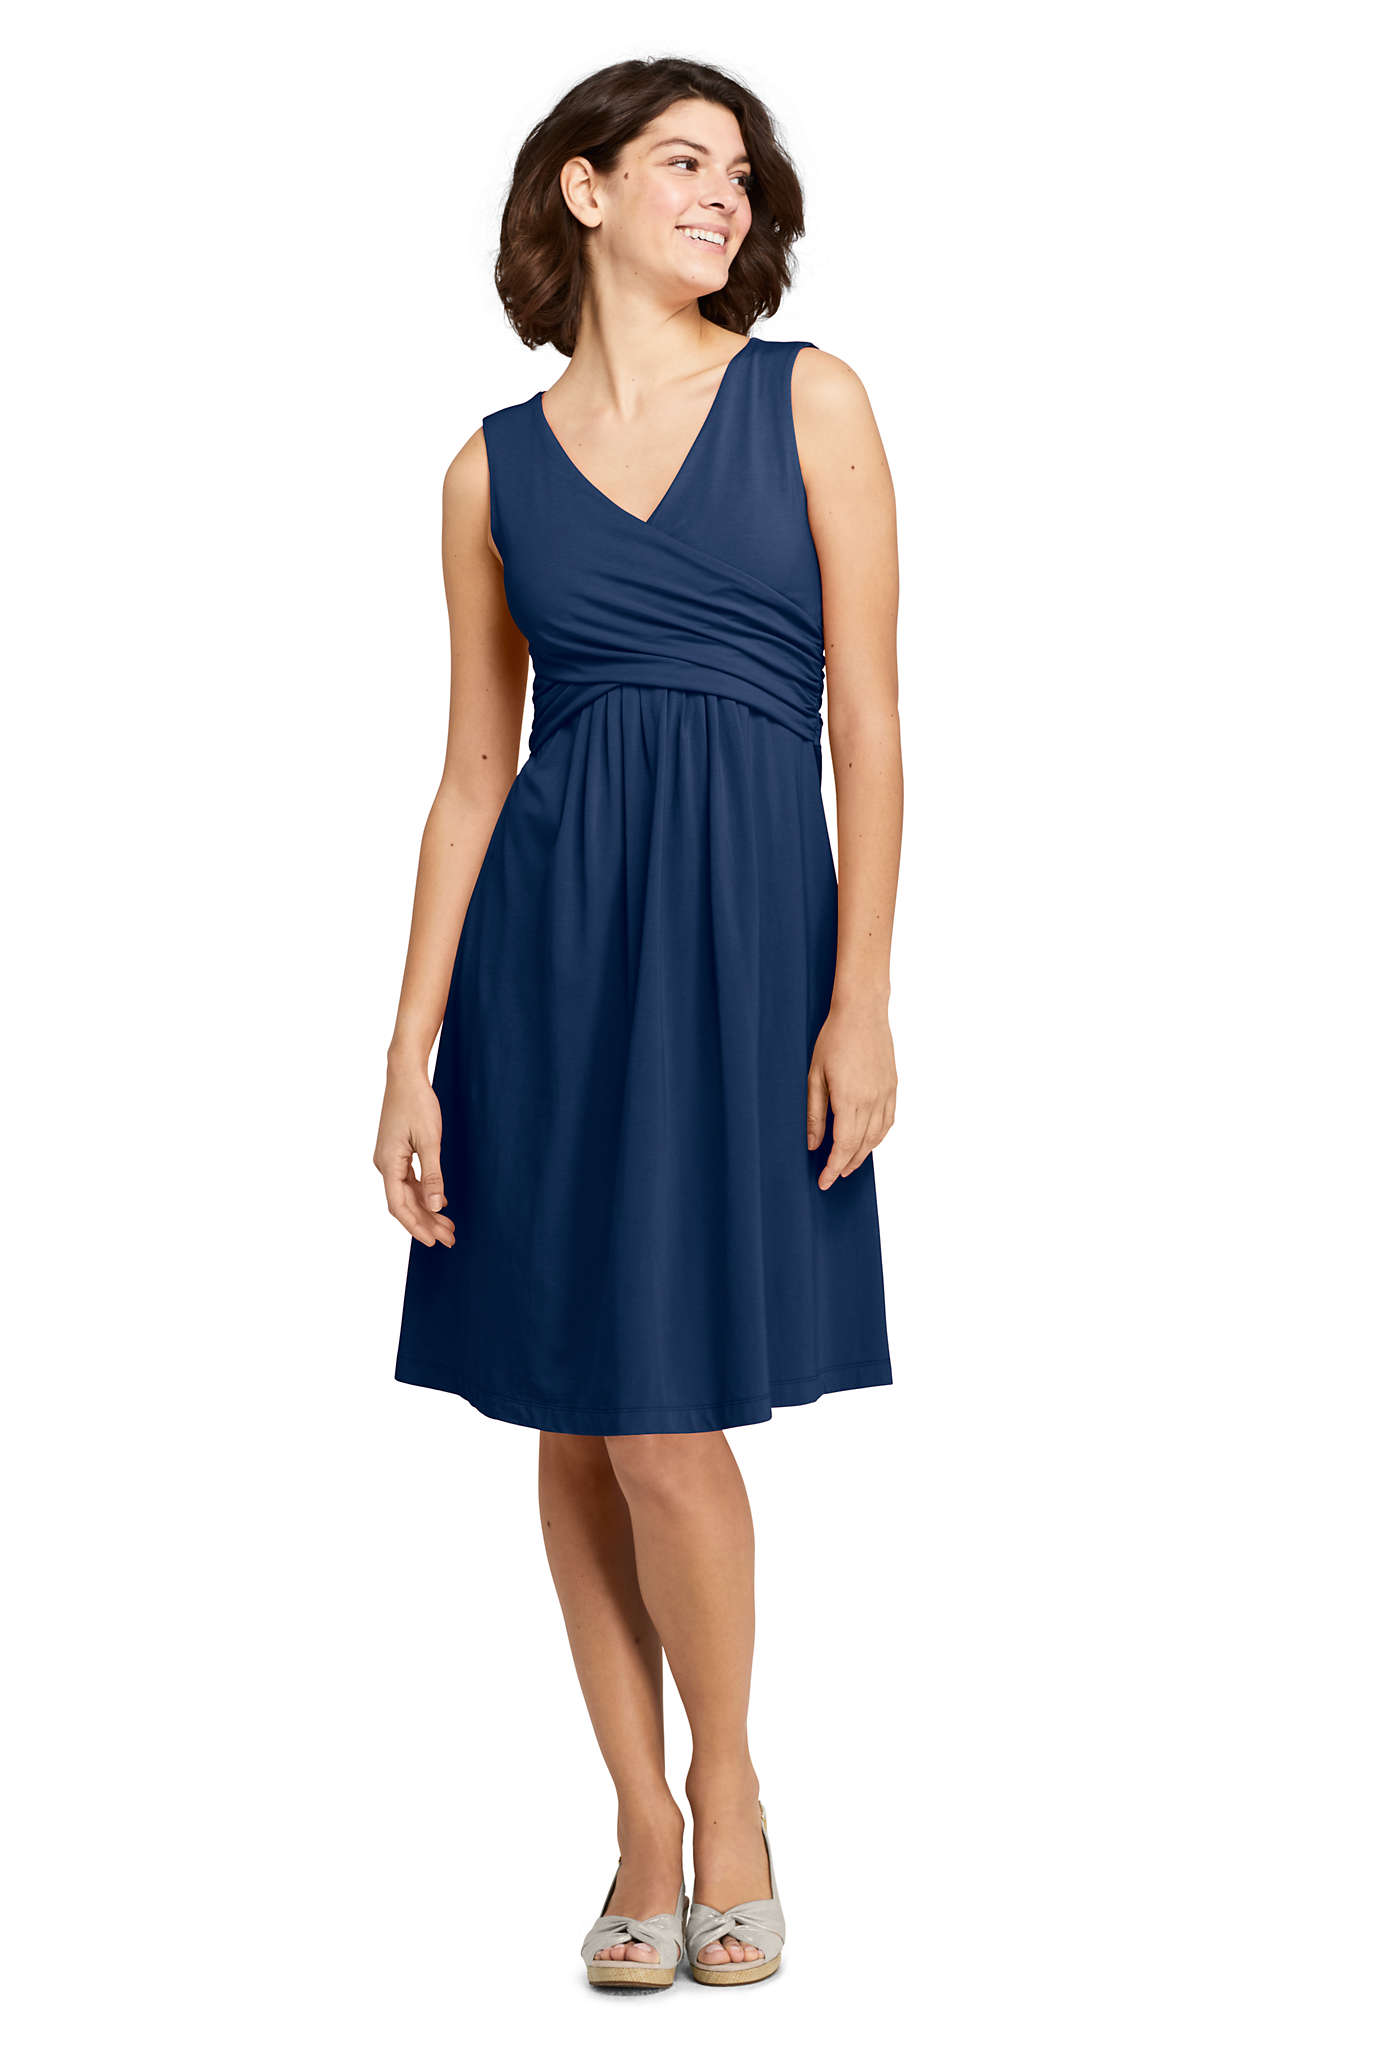 Women's 3/4 Sleeve Knot Front Fit and Flare Dress